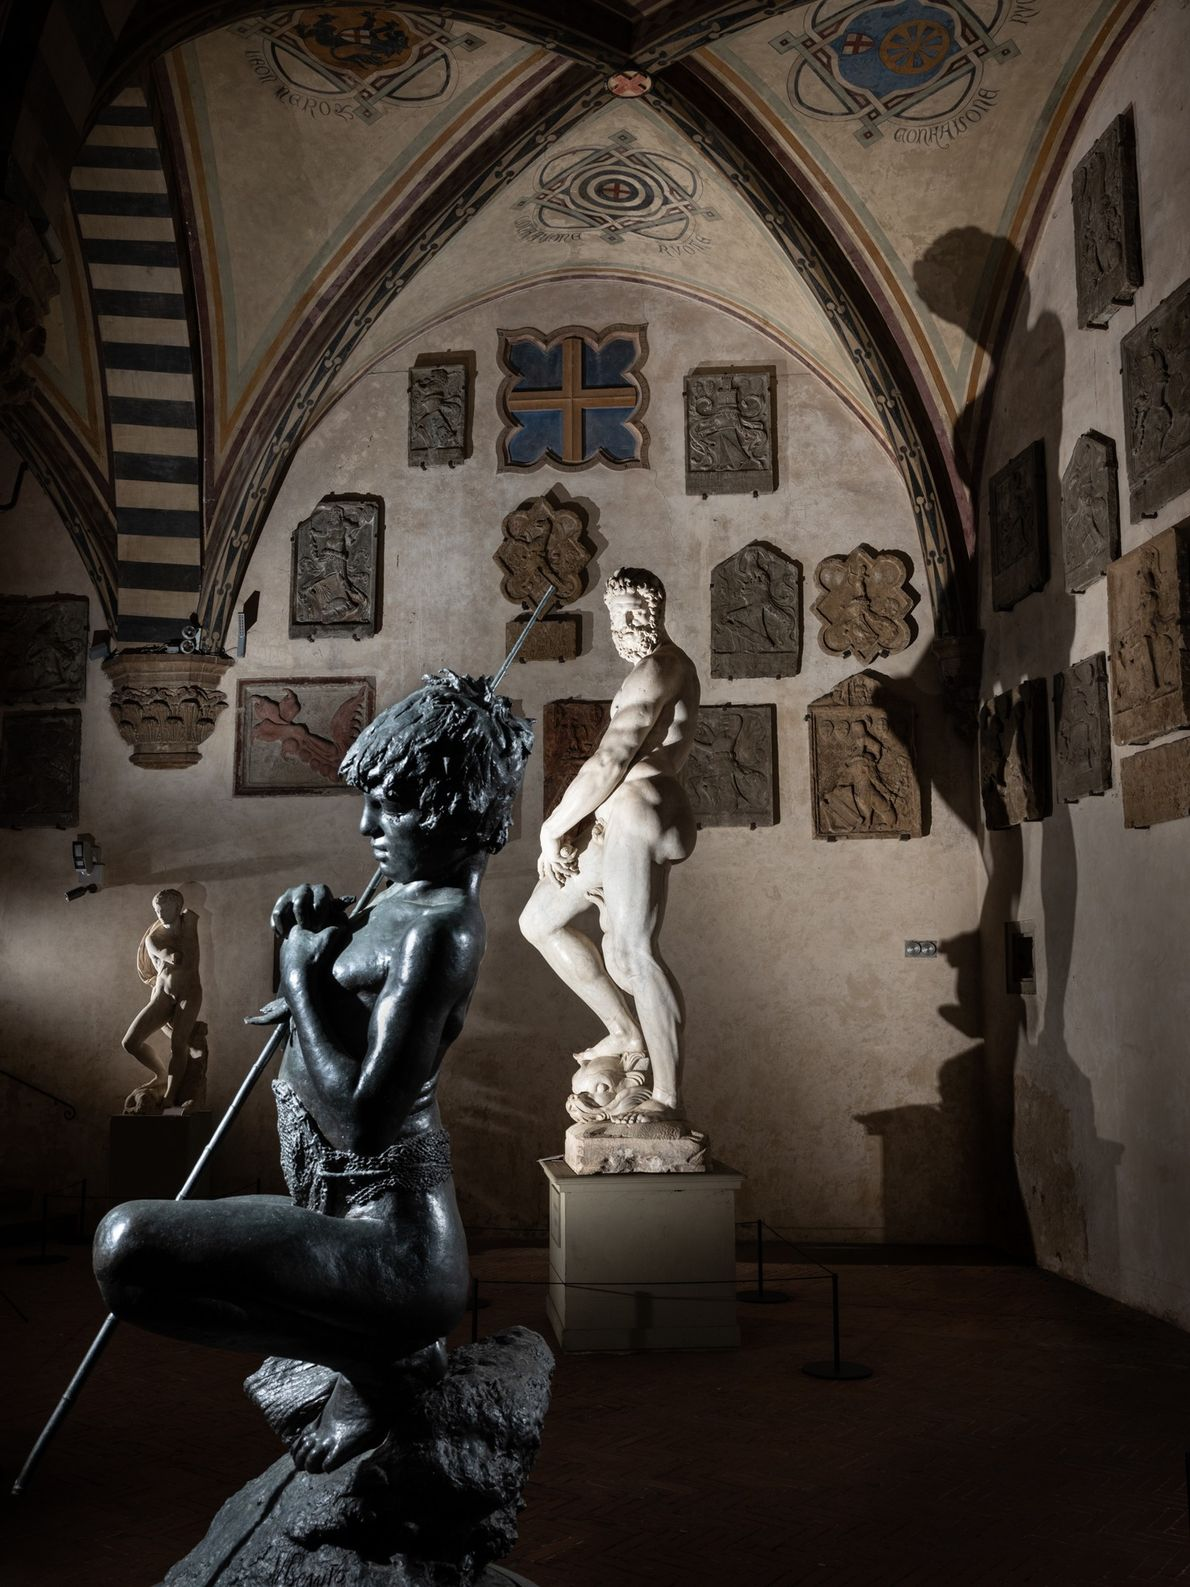 Gianbologna's weary Oceanus (1585) looks on Fisher Boy (Vincenzo Gemito, 1874) in the Bargello Museum.